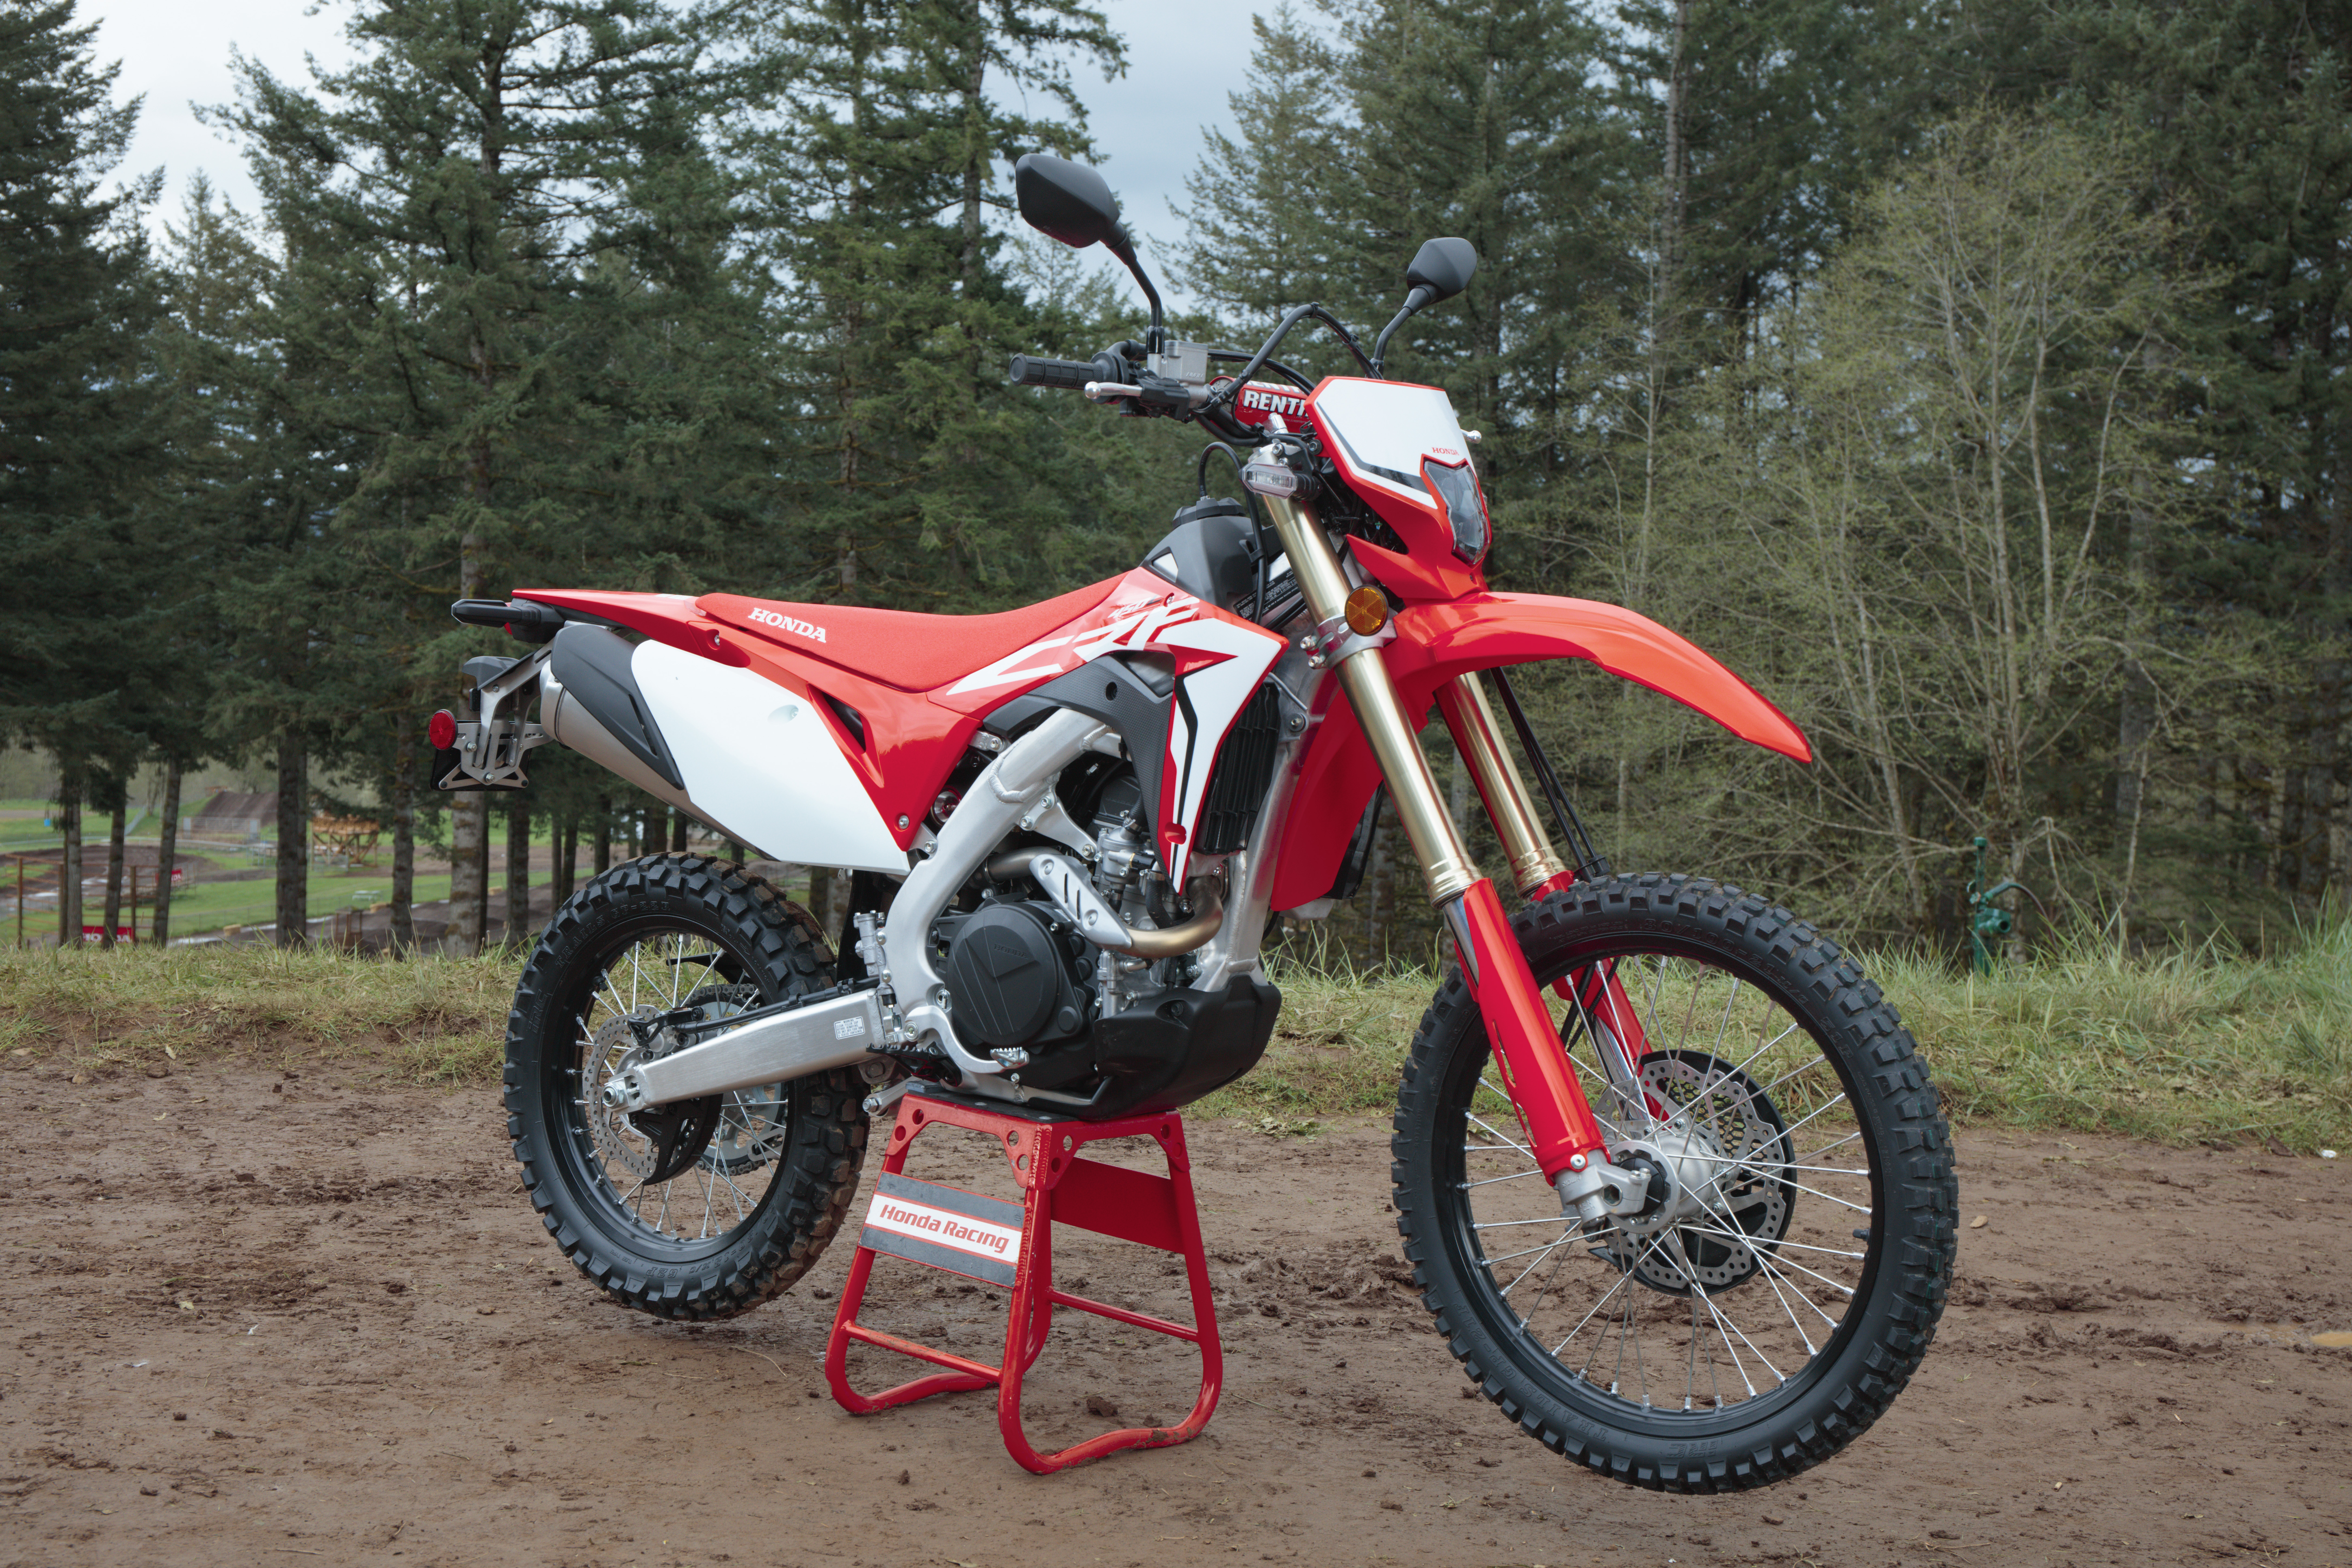 Honda Takes Aim At Ktm With A Performance Oriented Dual Sport Revzilla